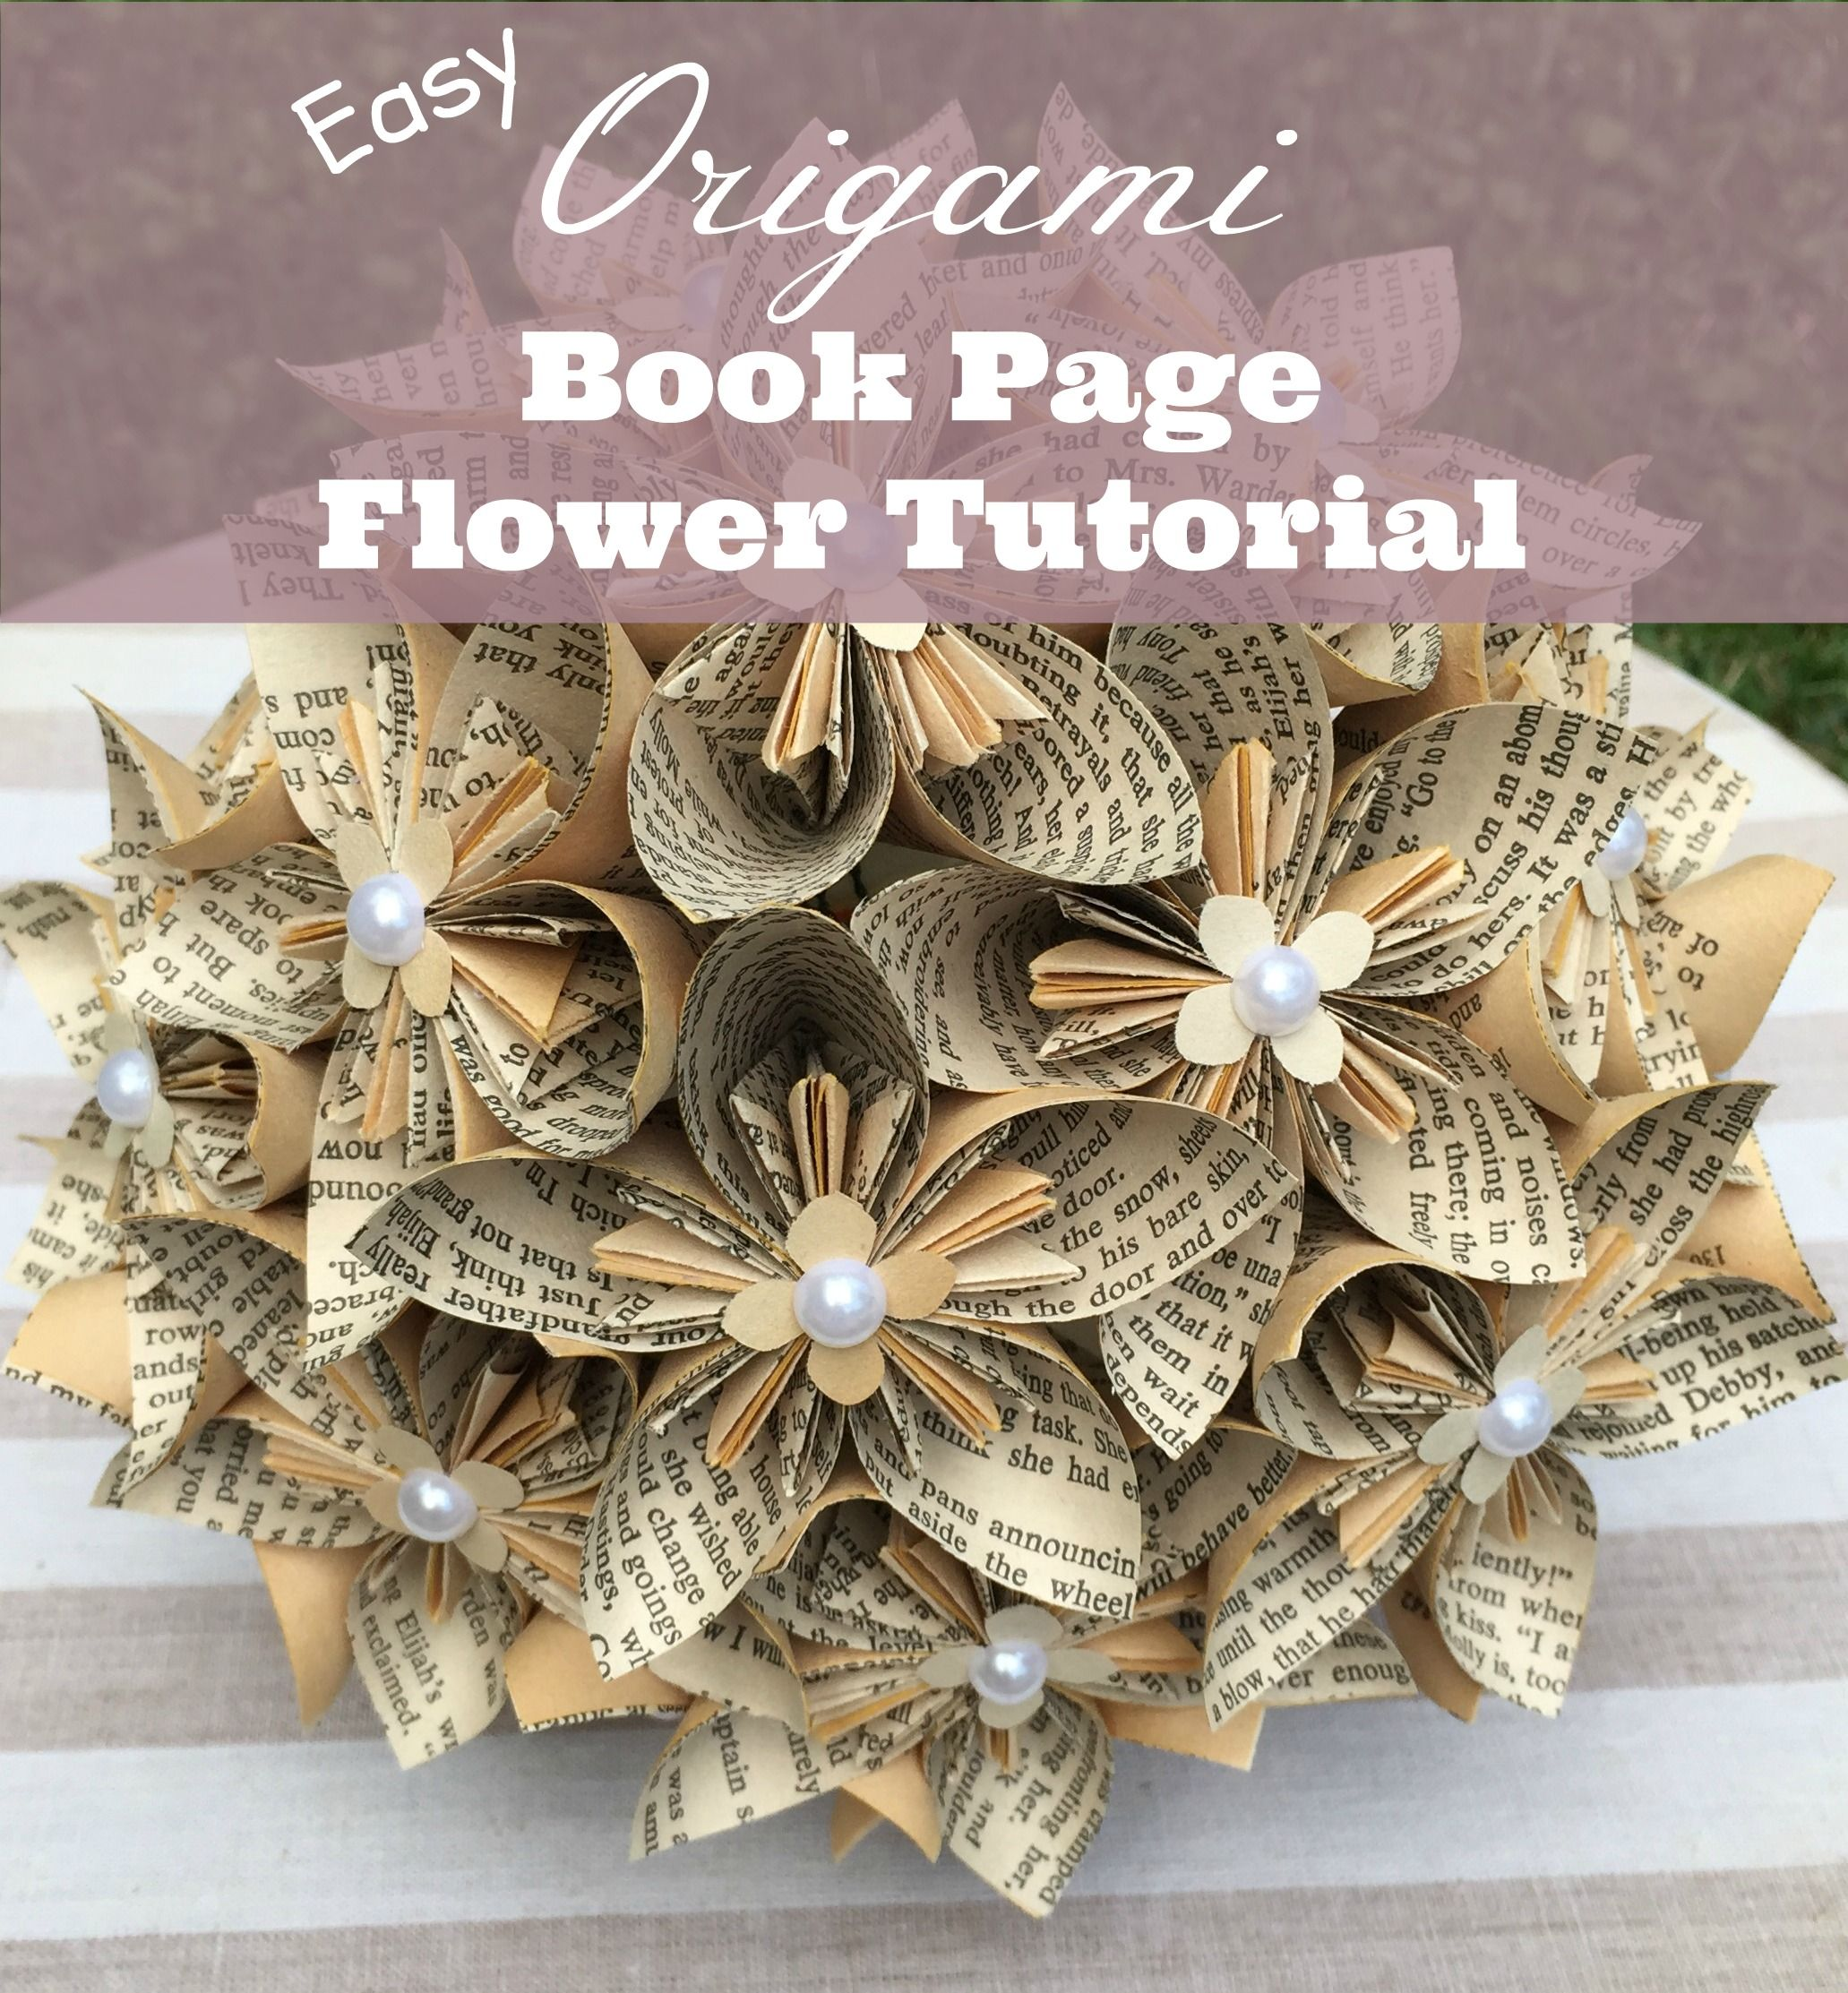 Easy Origami Book Page Flower Tutorial Video Crafty Pinterest